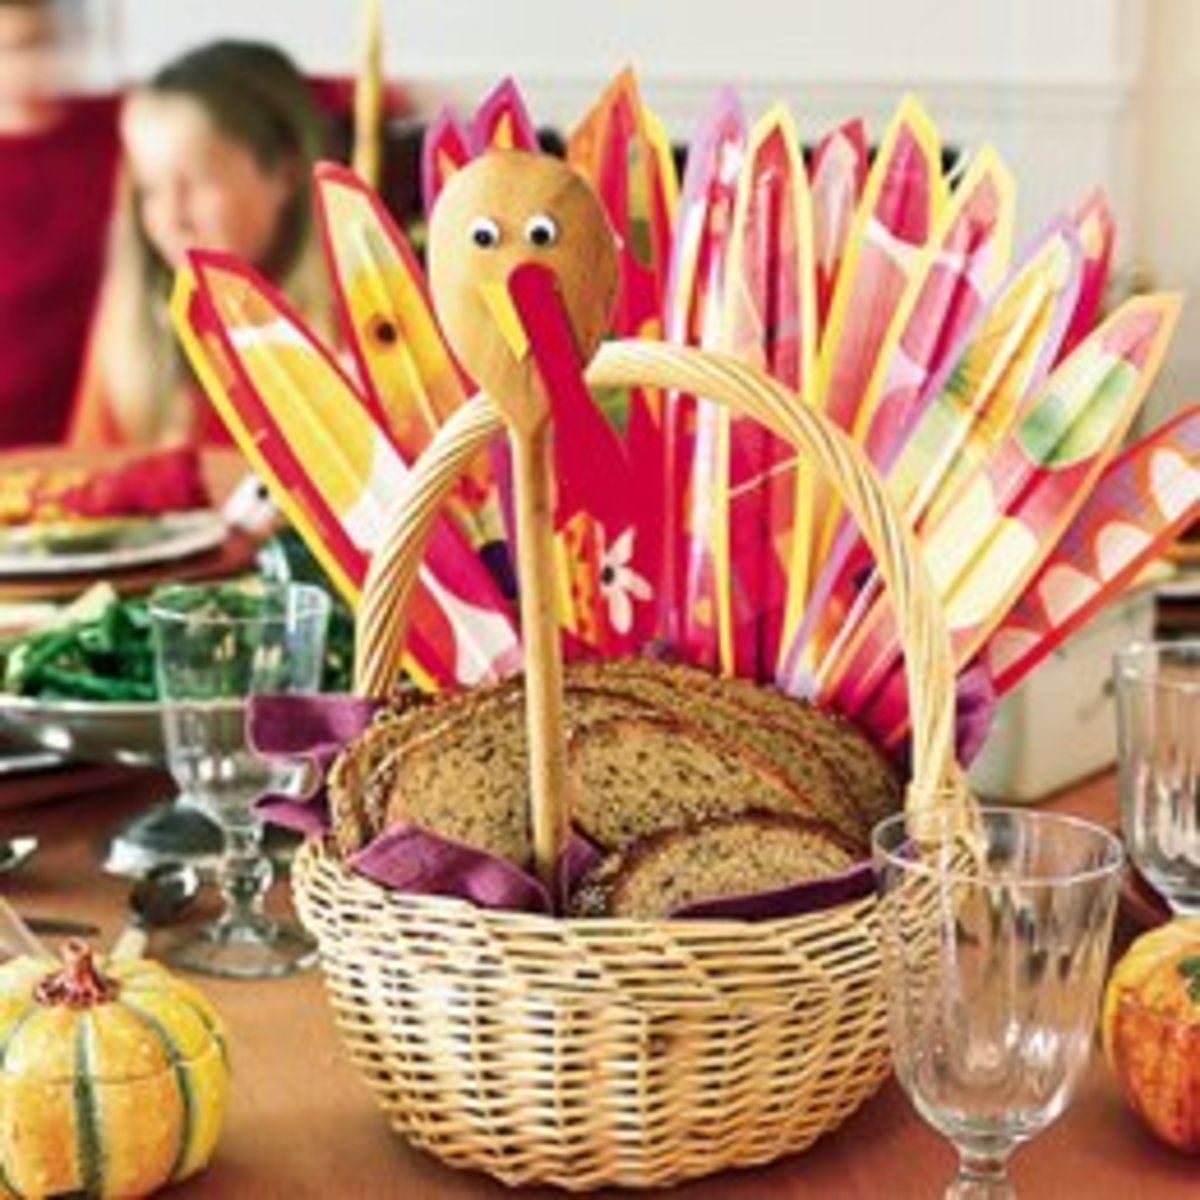 Turkey breadbasket makes a terrific centerpiece